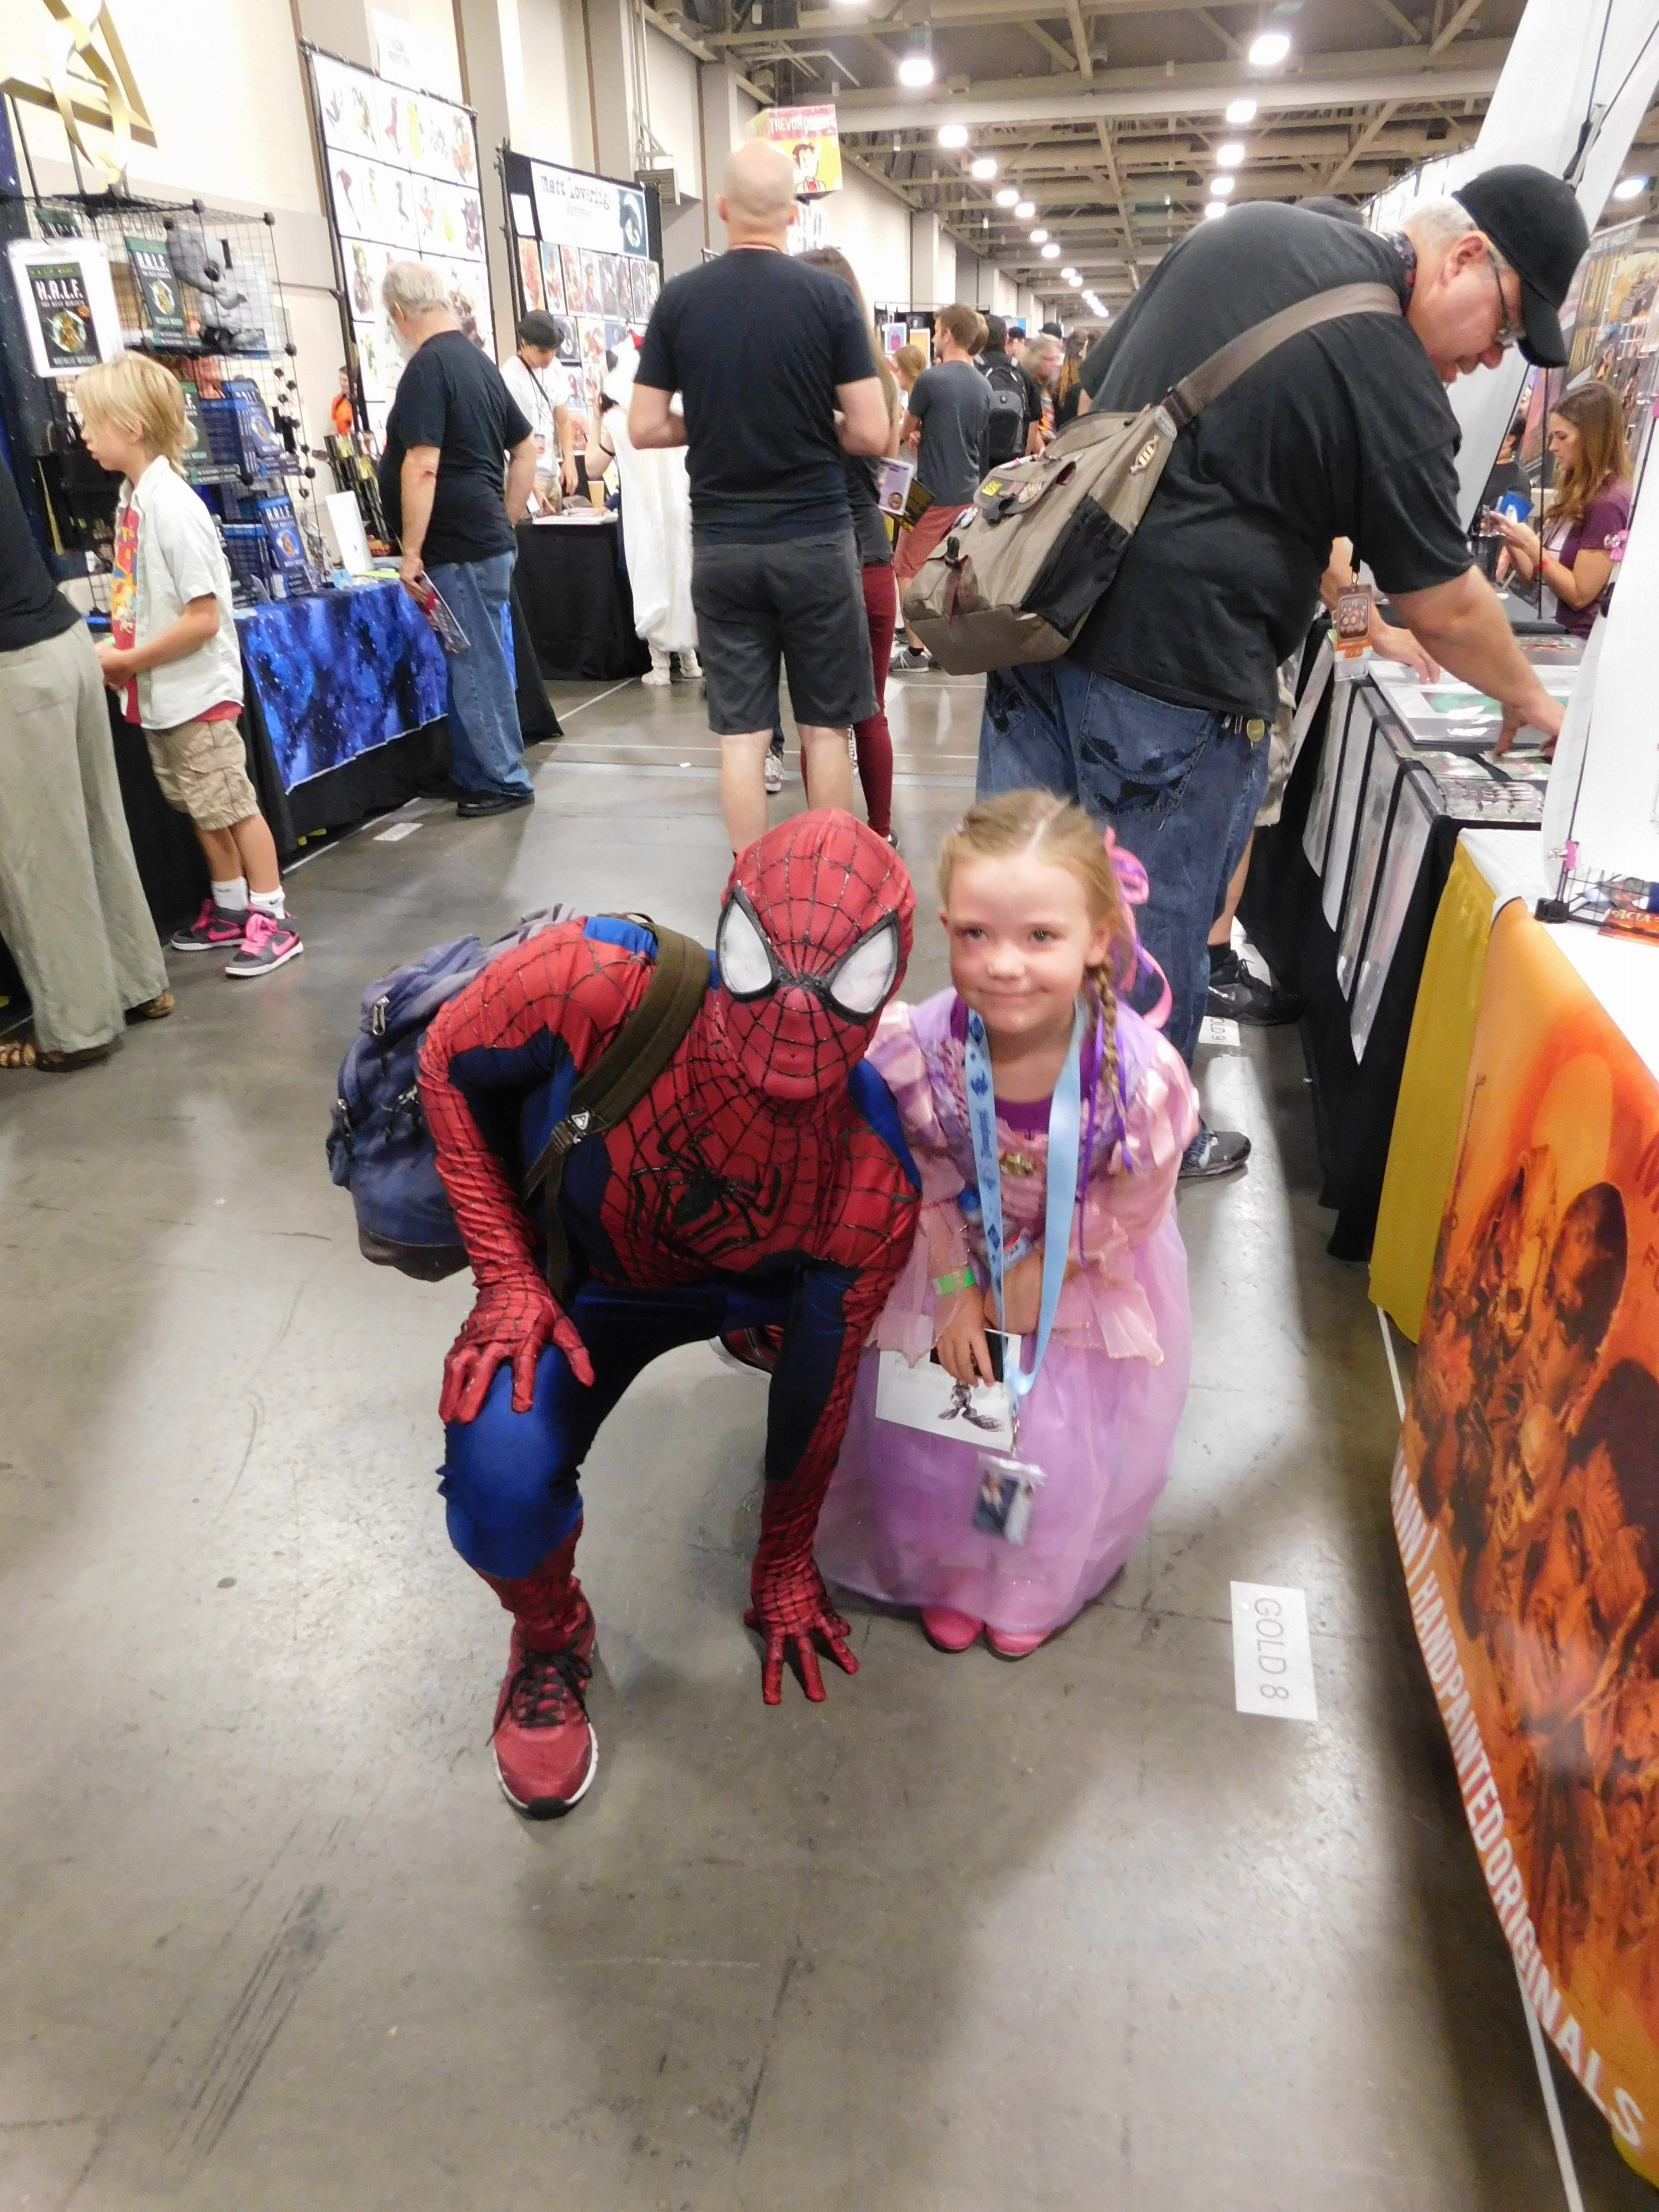 SLCCd3.009 - Spidey is saying hi to one of his biggest fans, Rapunzle.